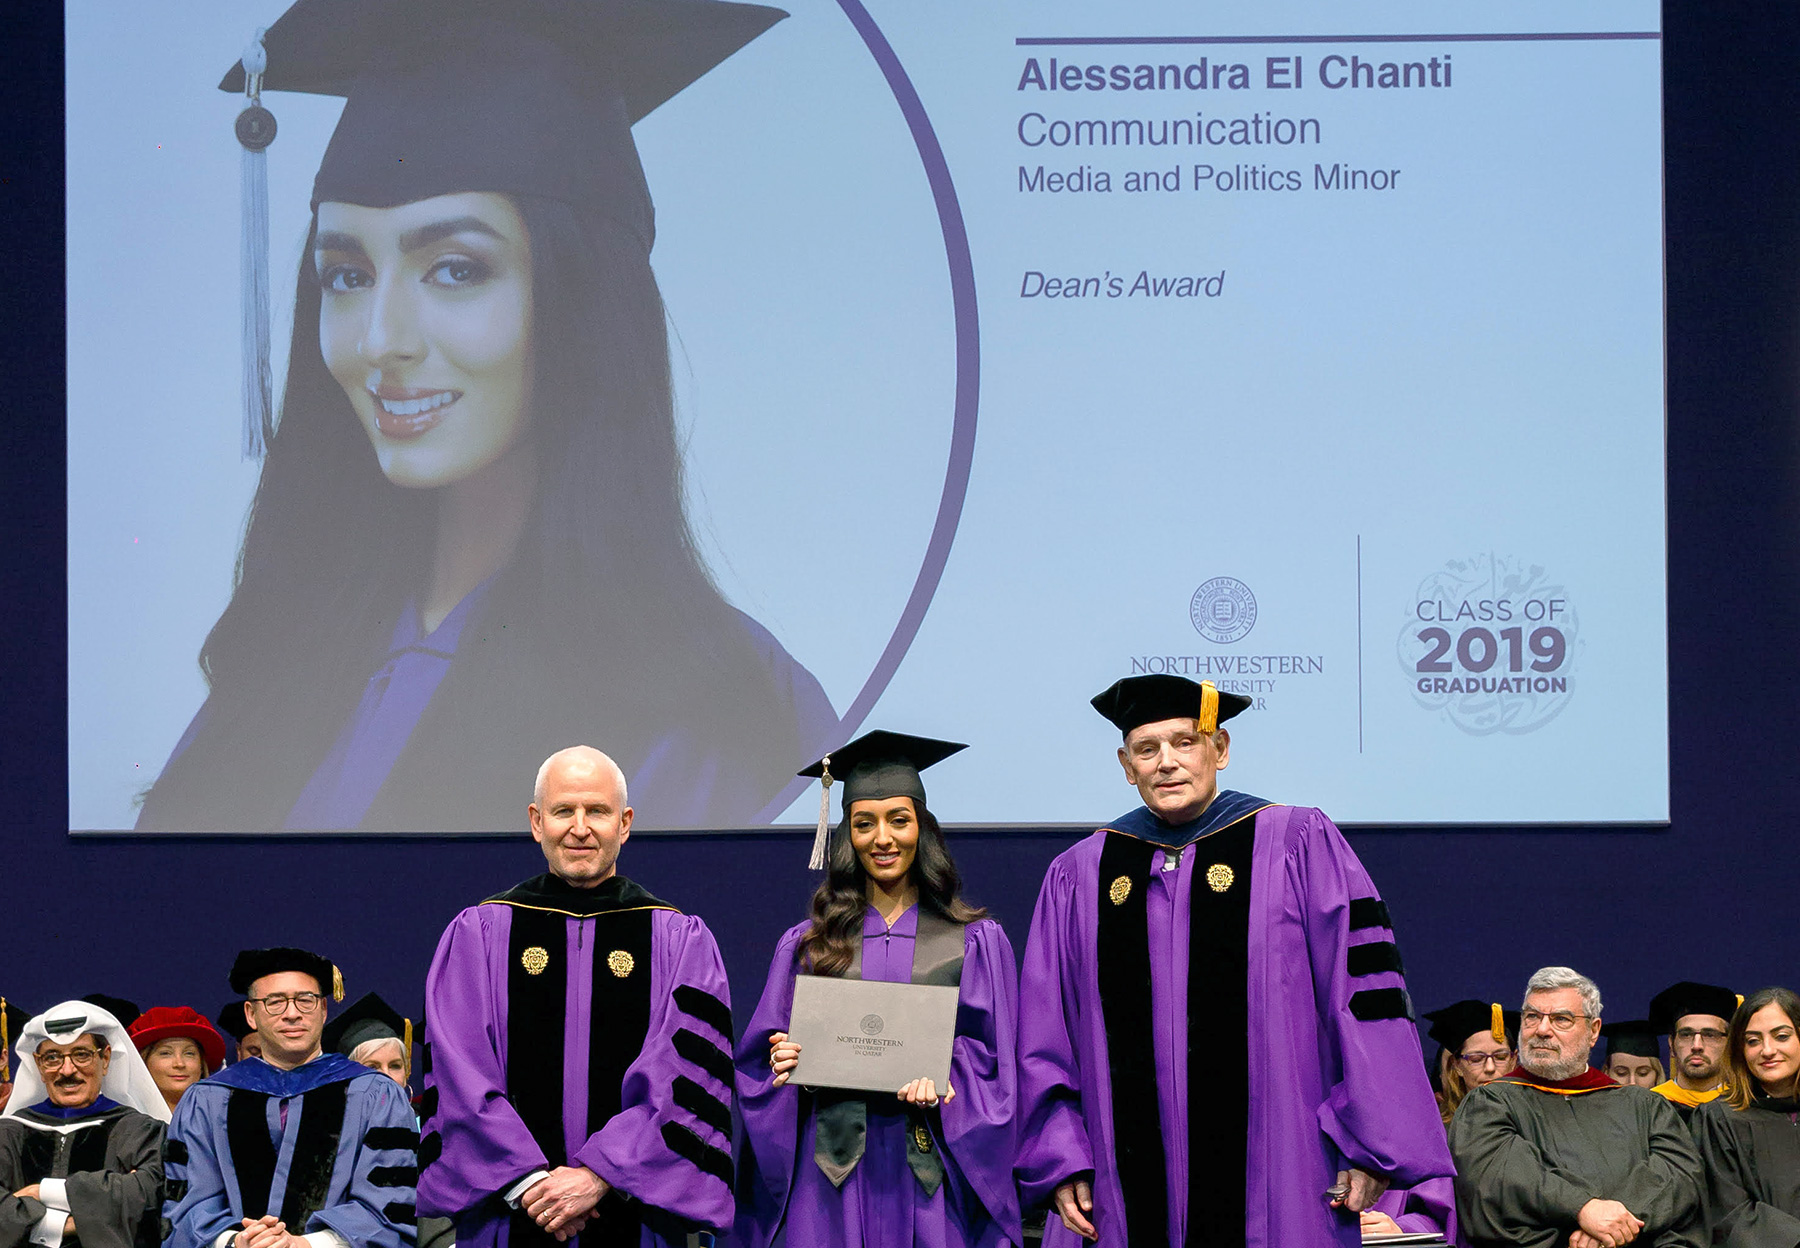 alessandra el chanti receives the deans award at the northwestern university in qatar commencement in doha